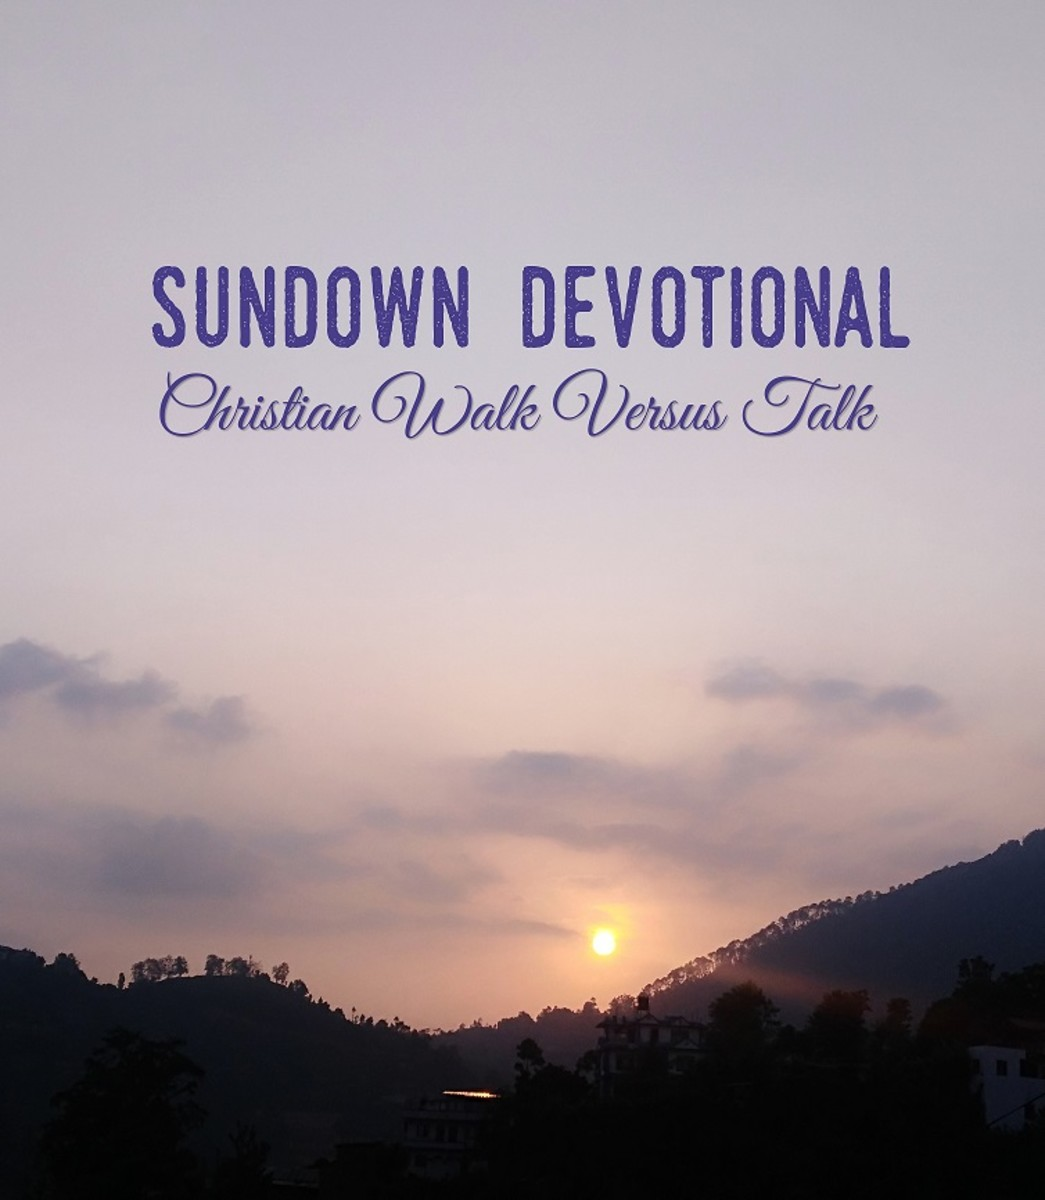 Sundown Devotional: Christian Walk Versus Talk